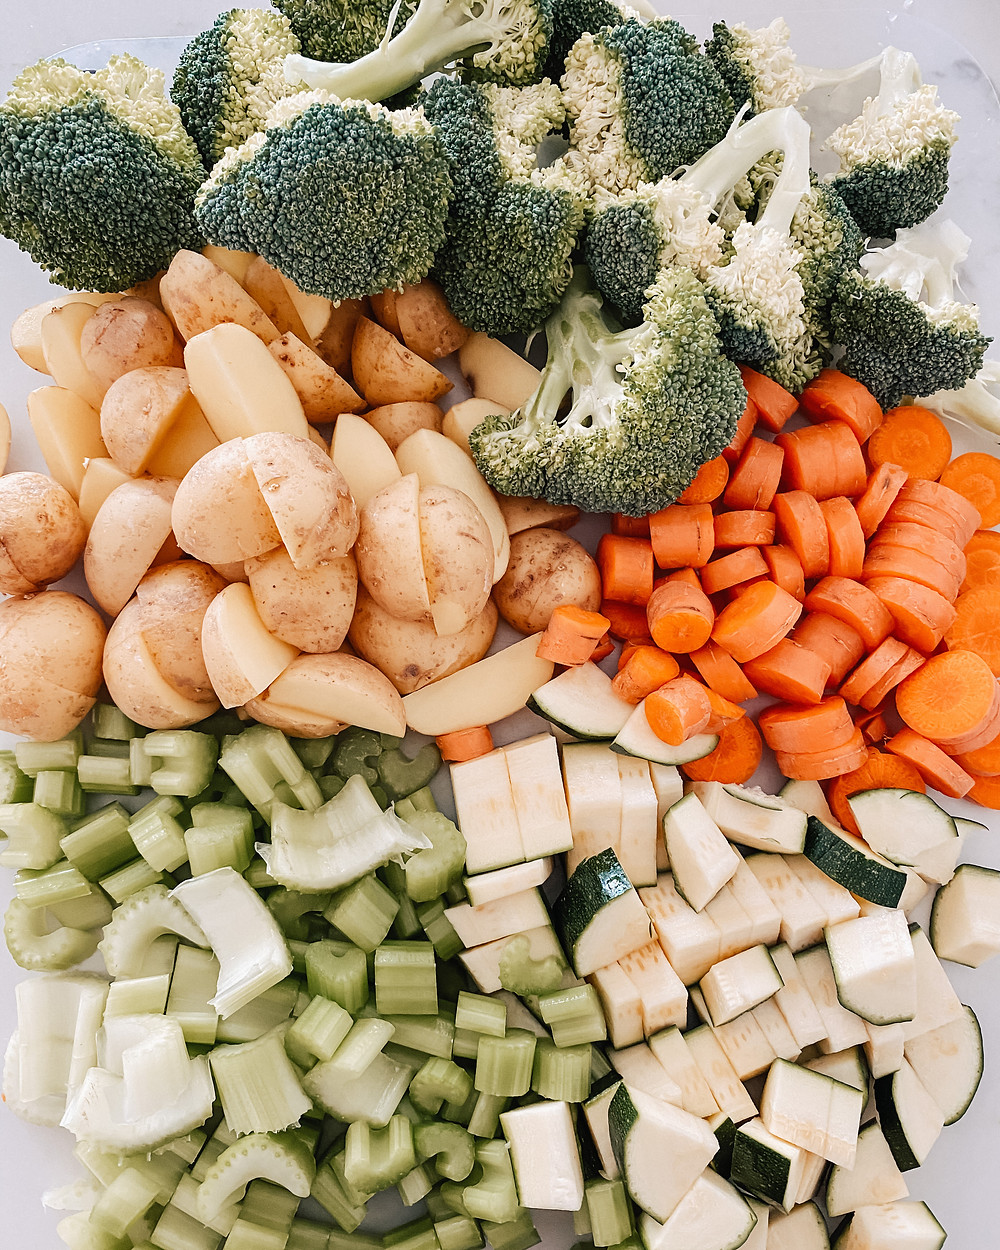 A group of vegetables containing broccoli, potatoes, carrots, celery, and zucchini sit on a countertop.